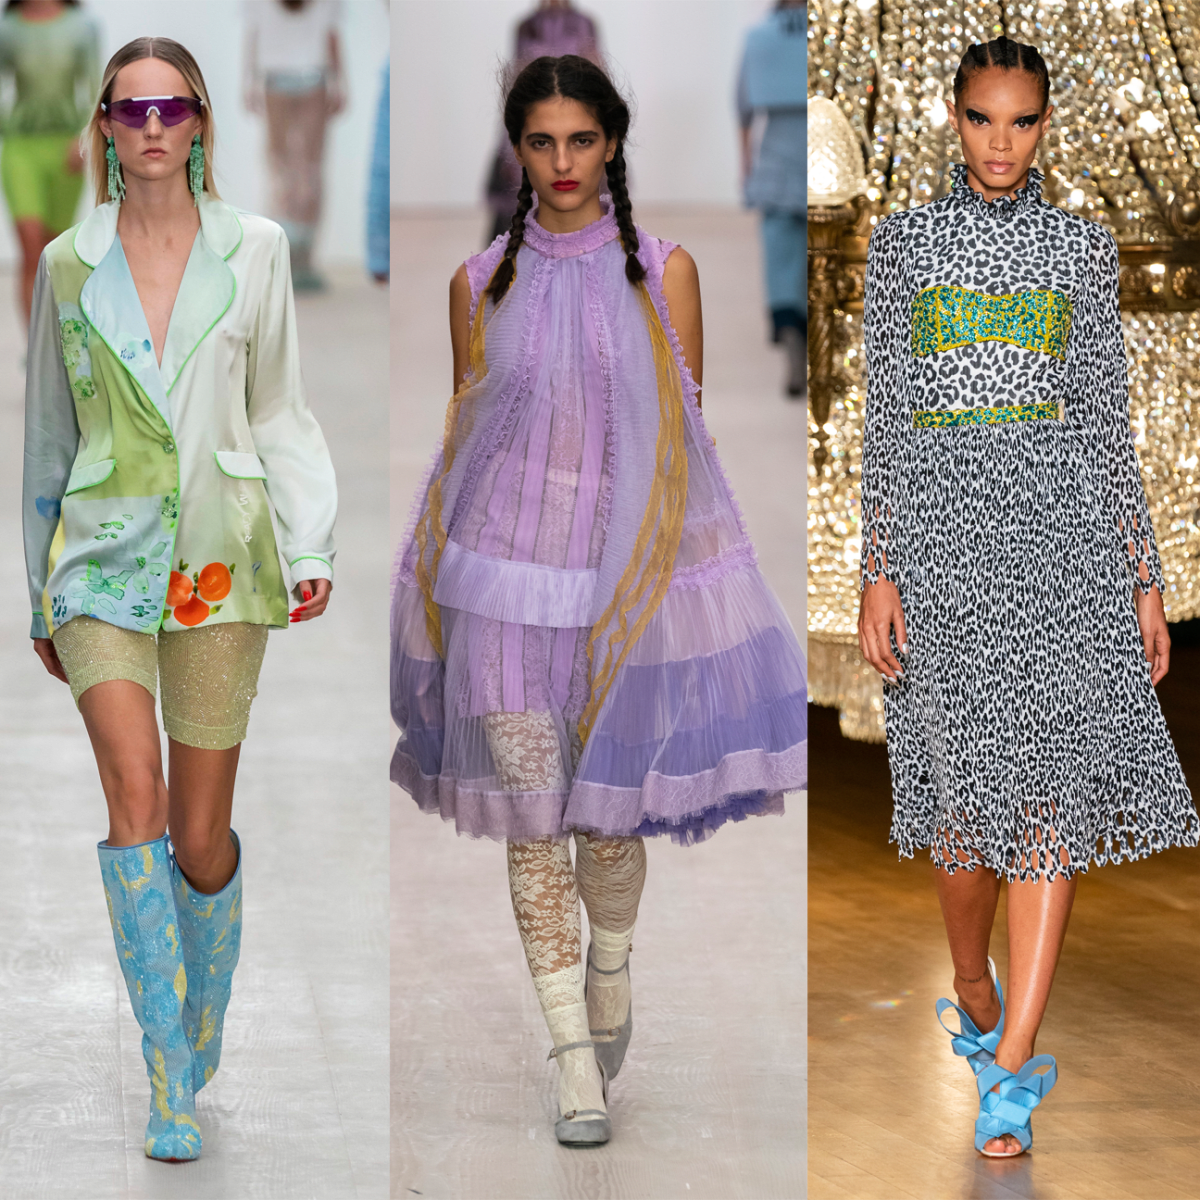 6 Top Trends From the London Spring 6 Runways - Fashionista